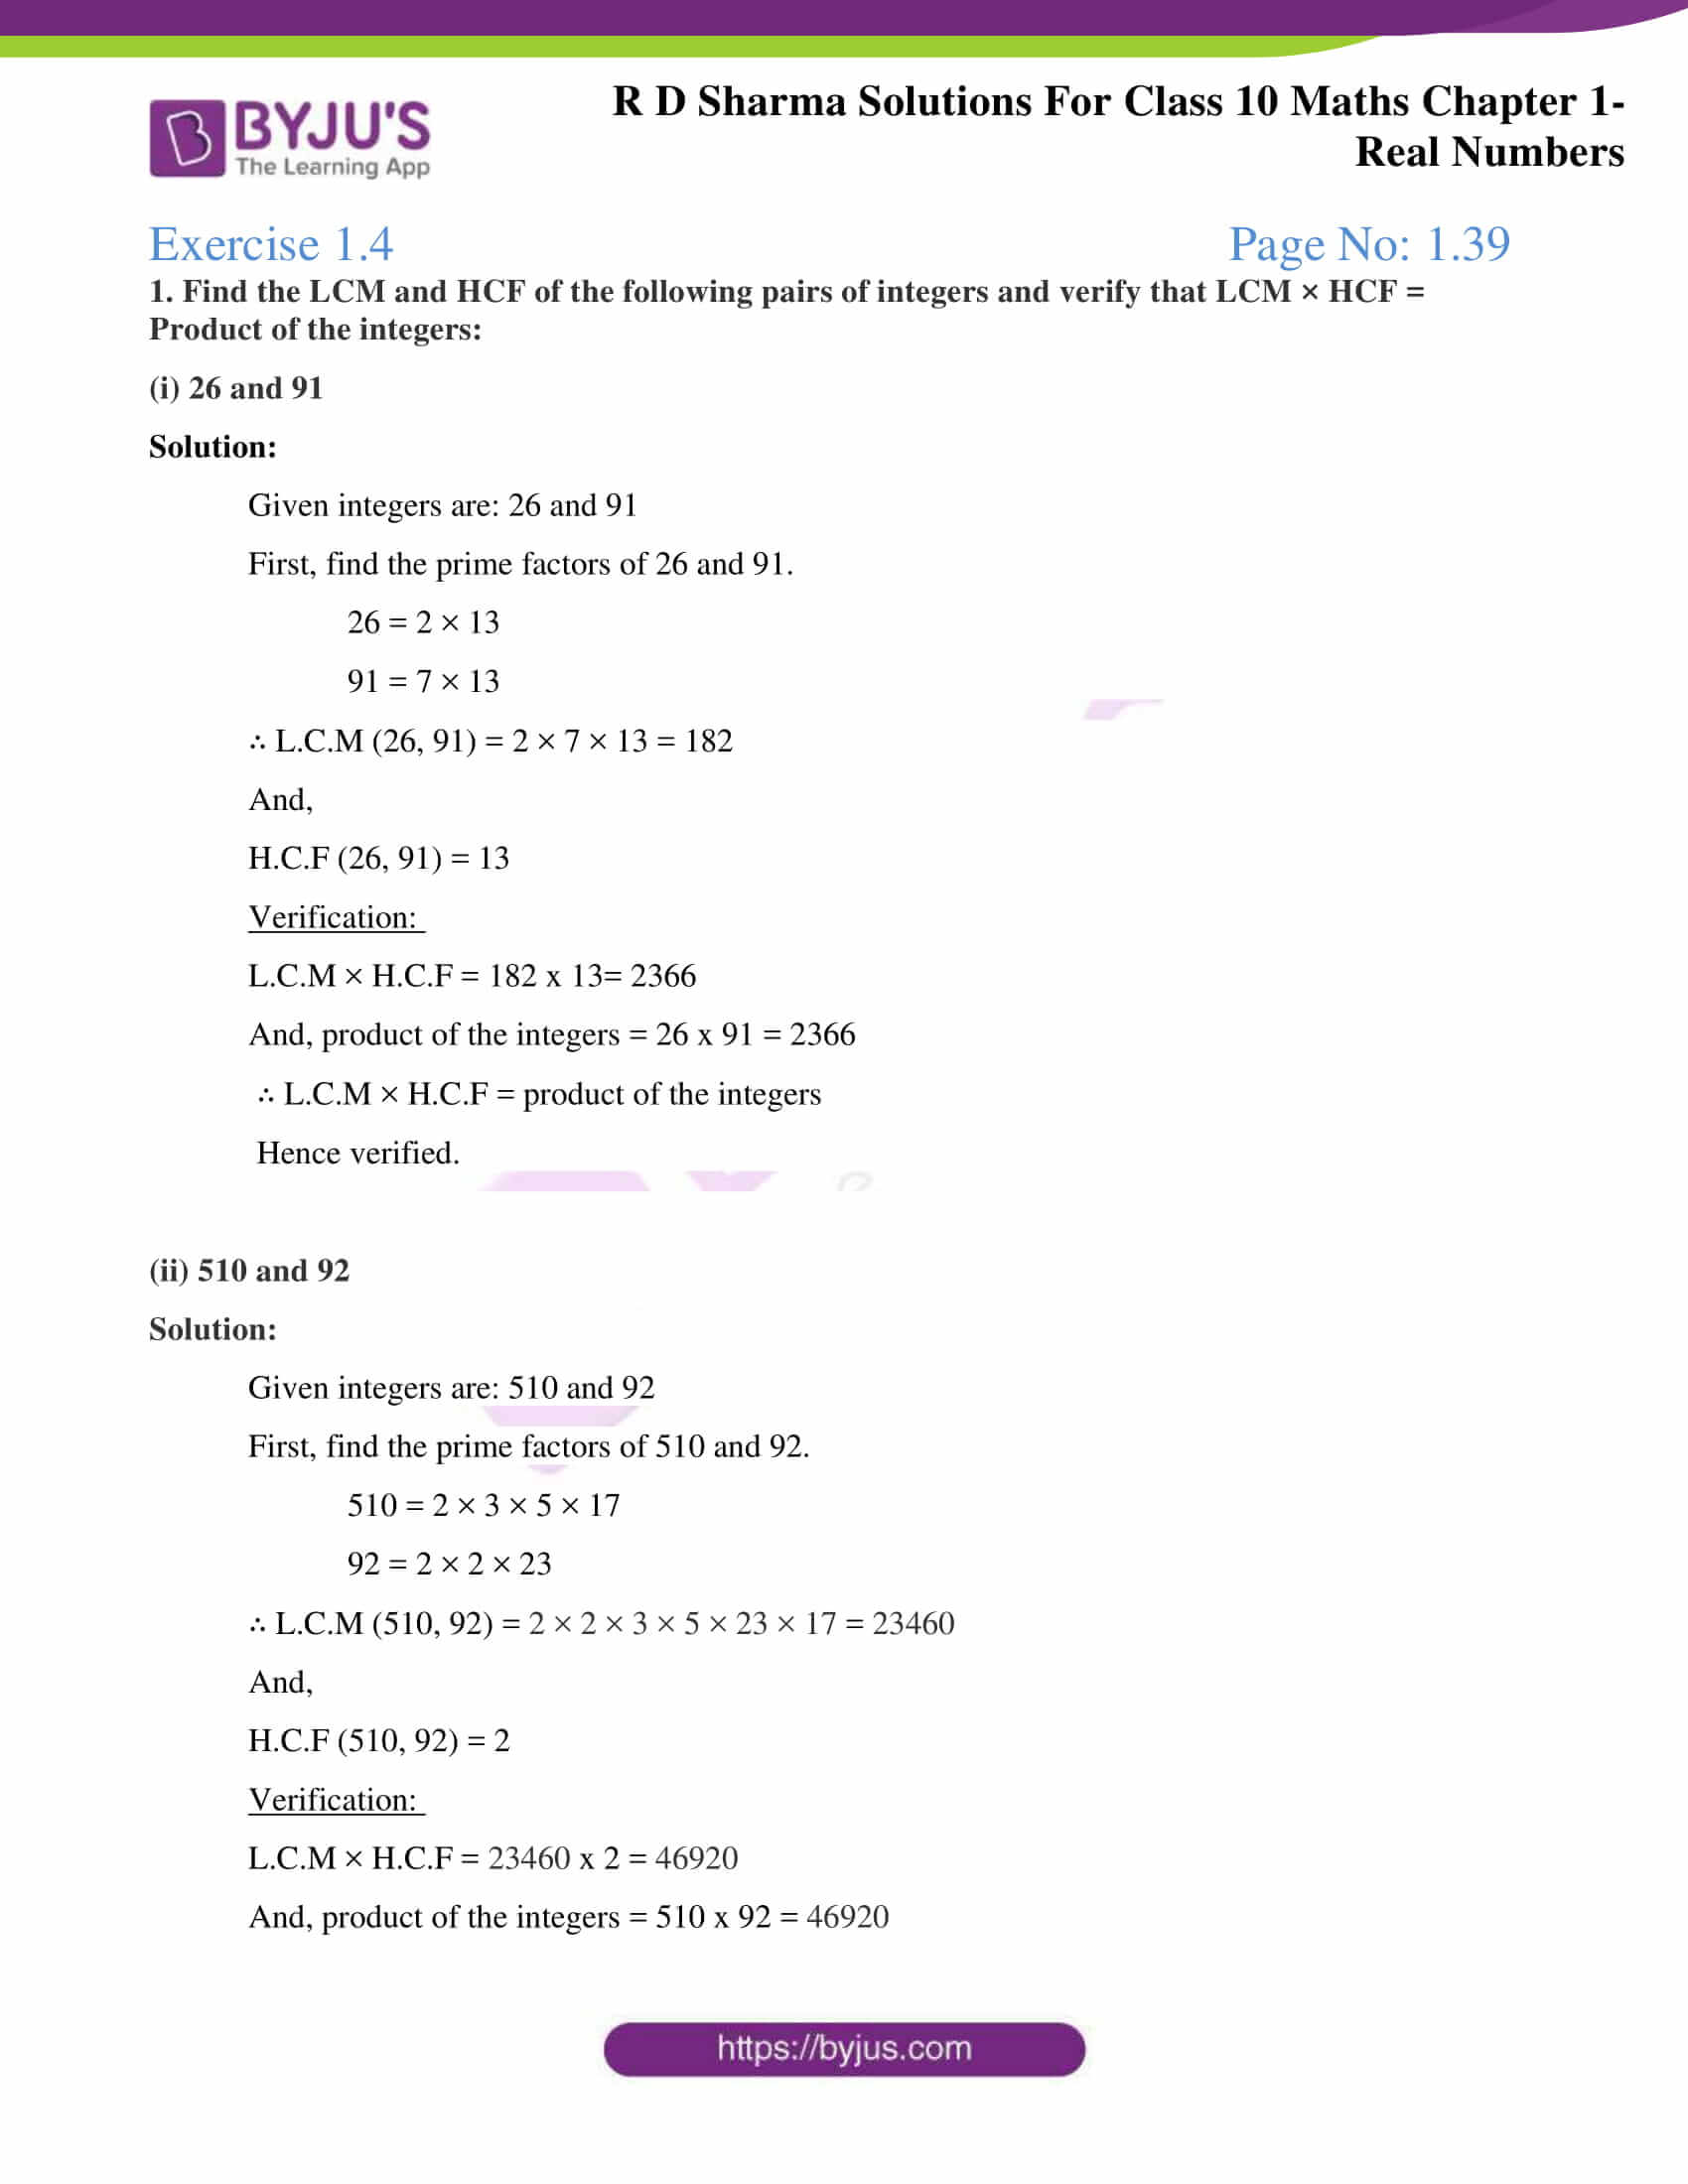 rd sharma solutions for class 10 chapter 1 ex 1.4